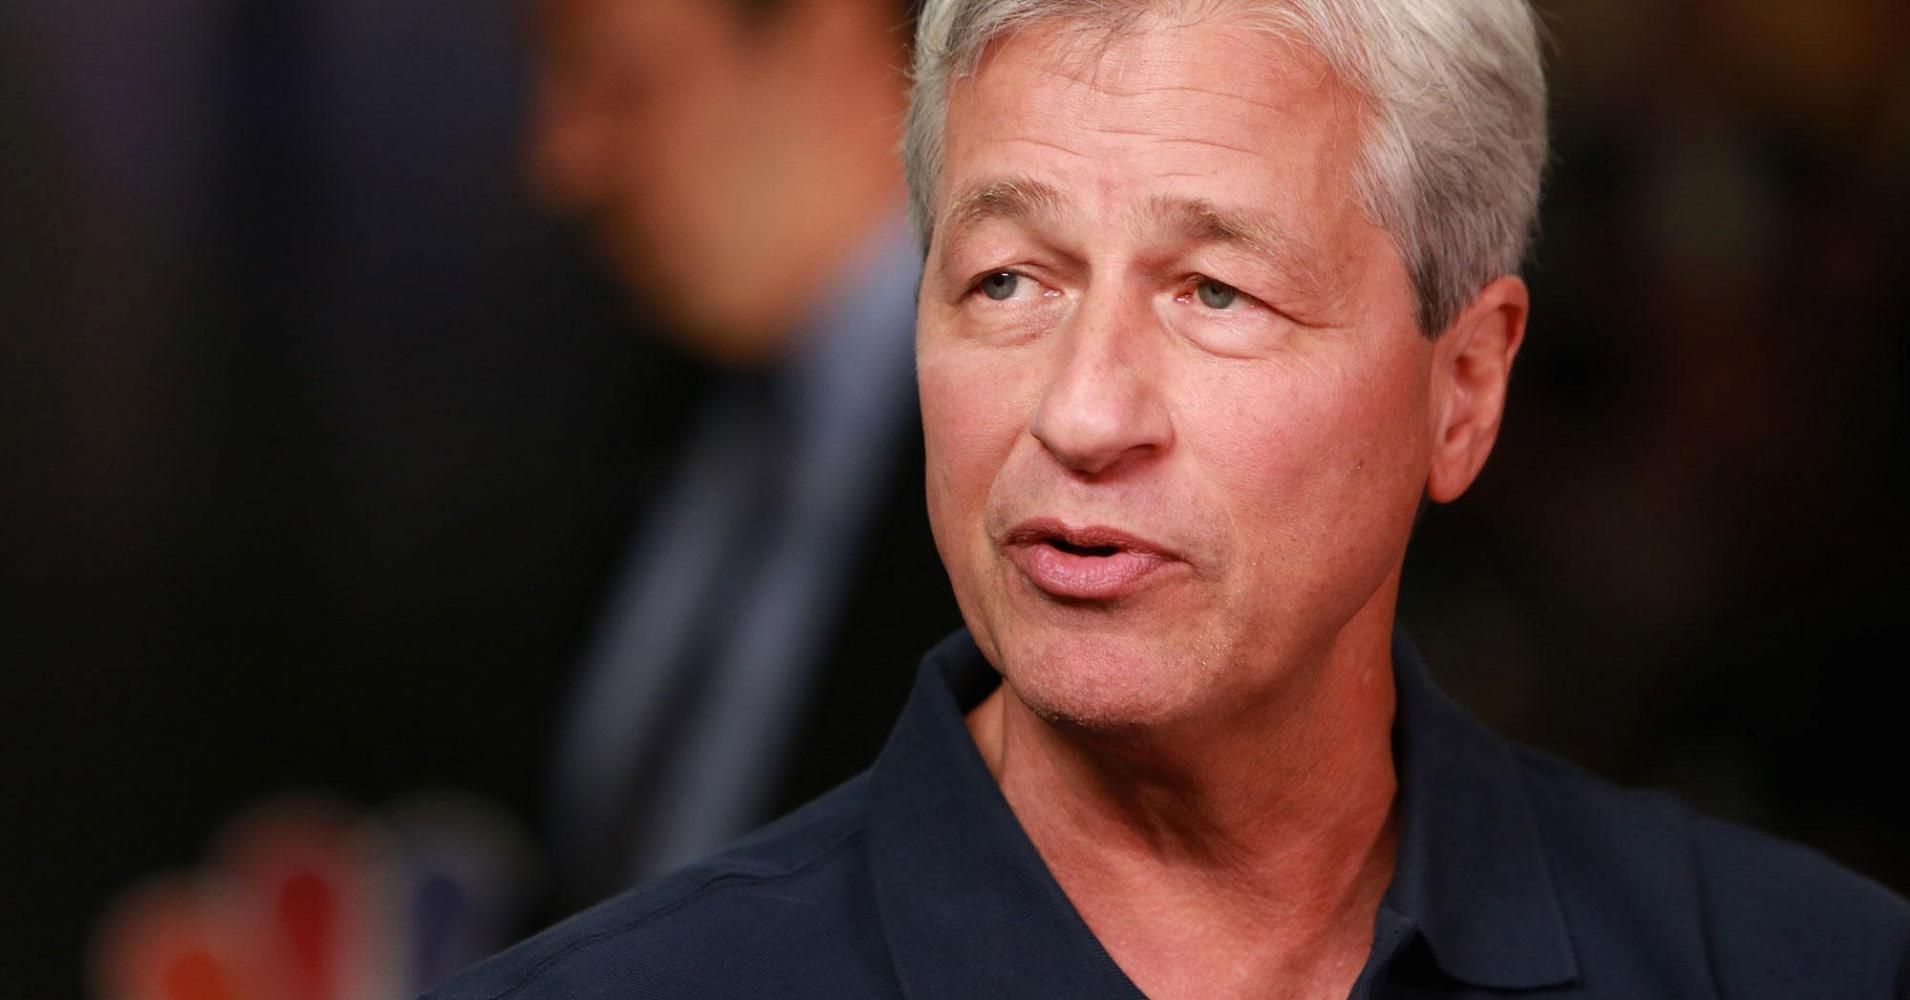 Look at CEO Jamie Dimon speaks on the